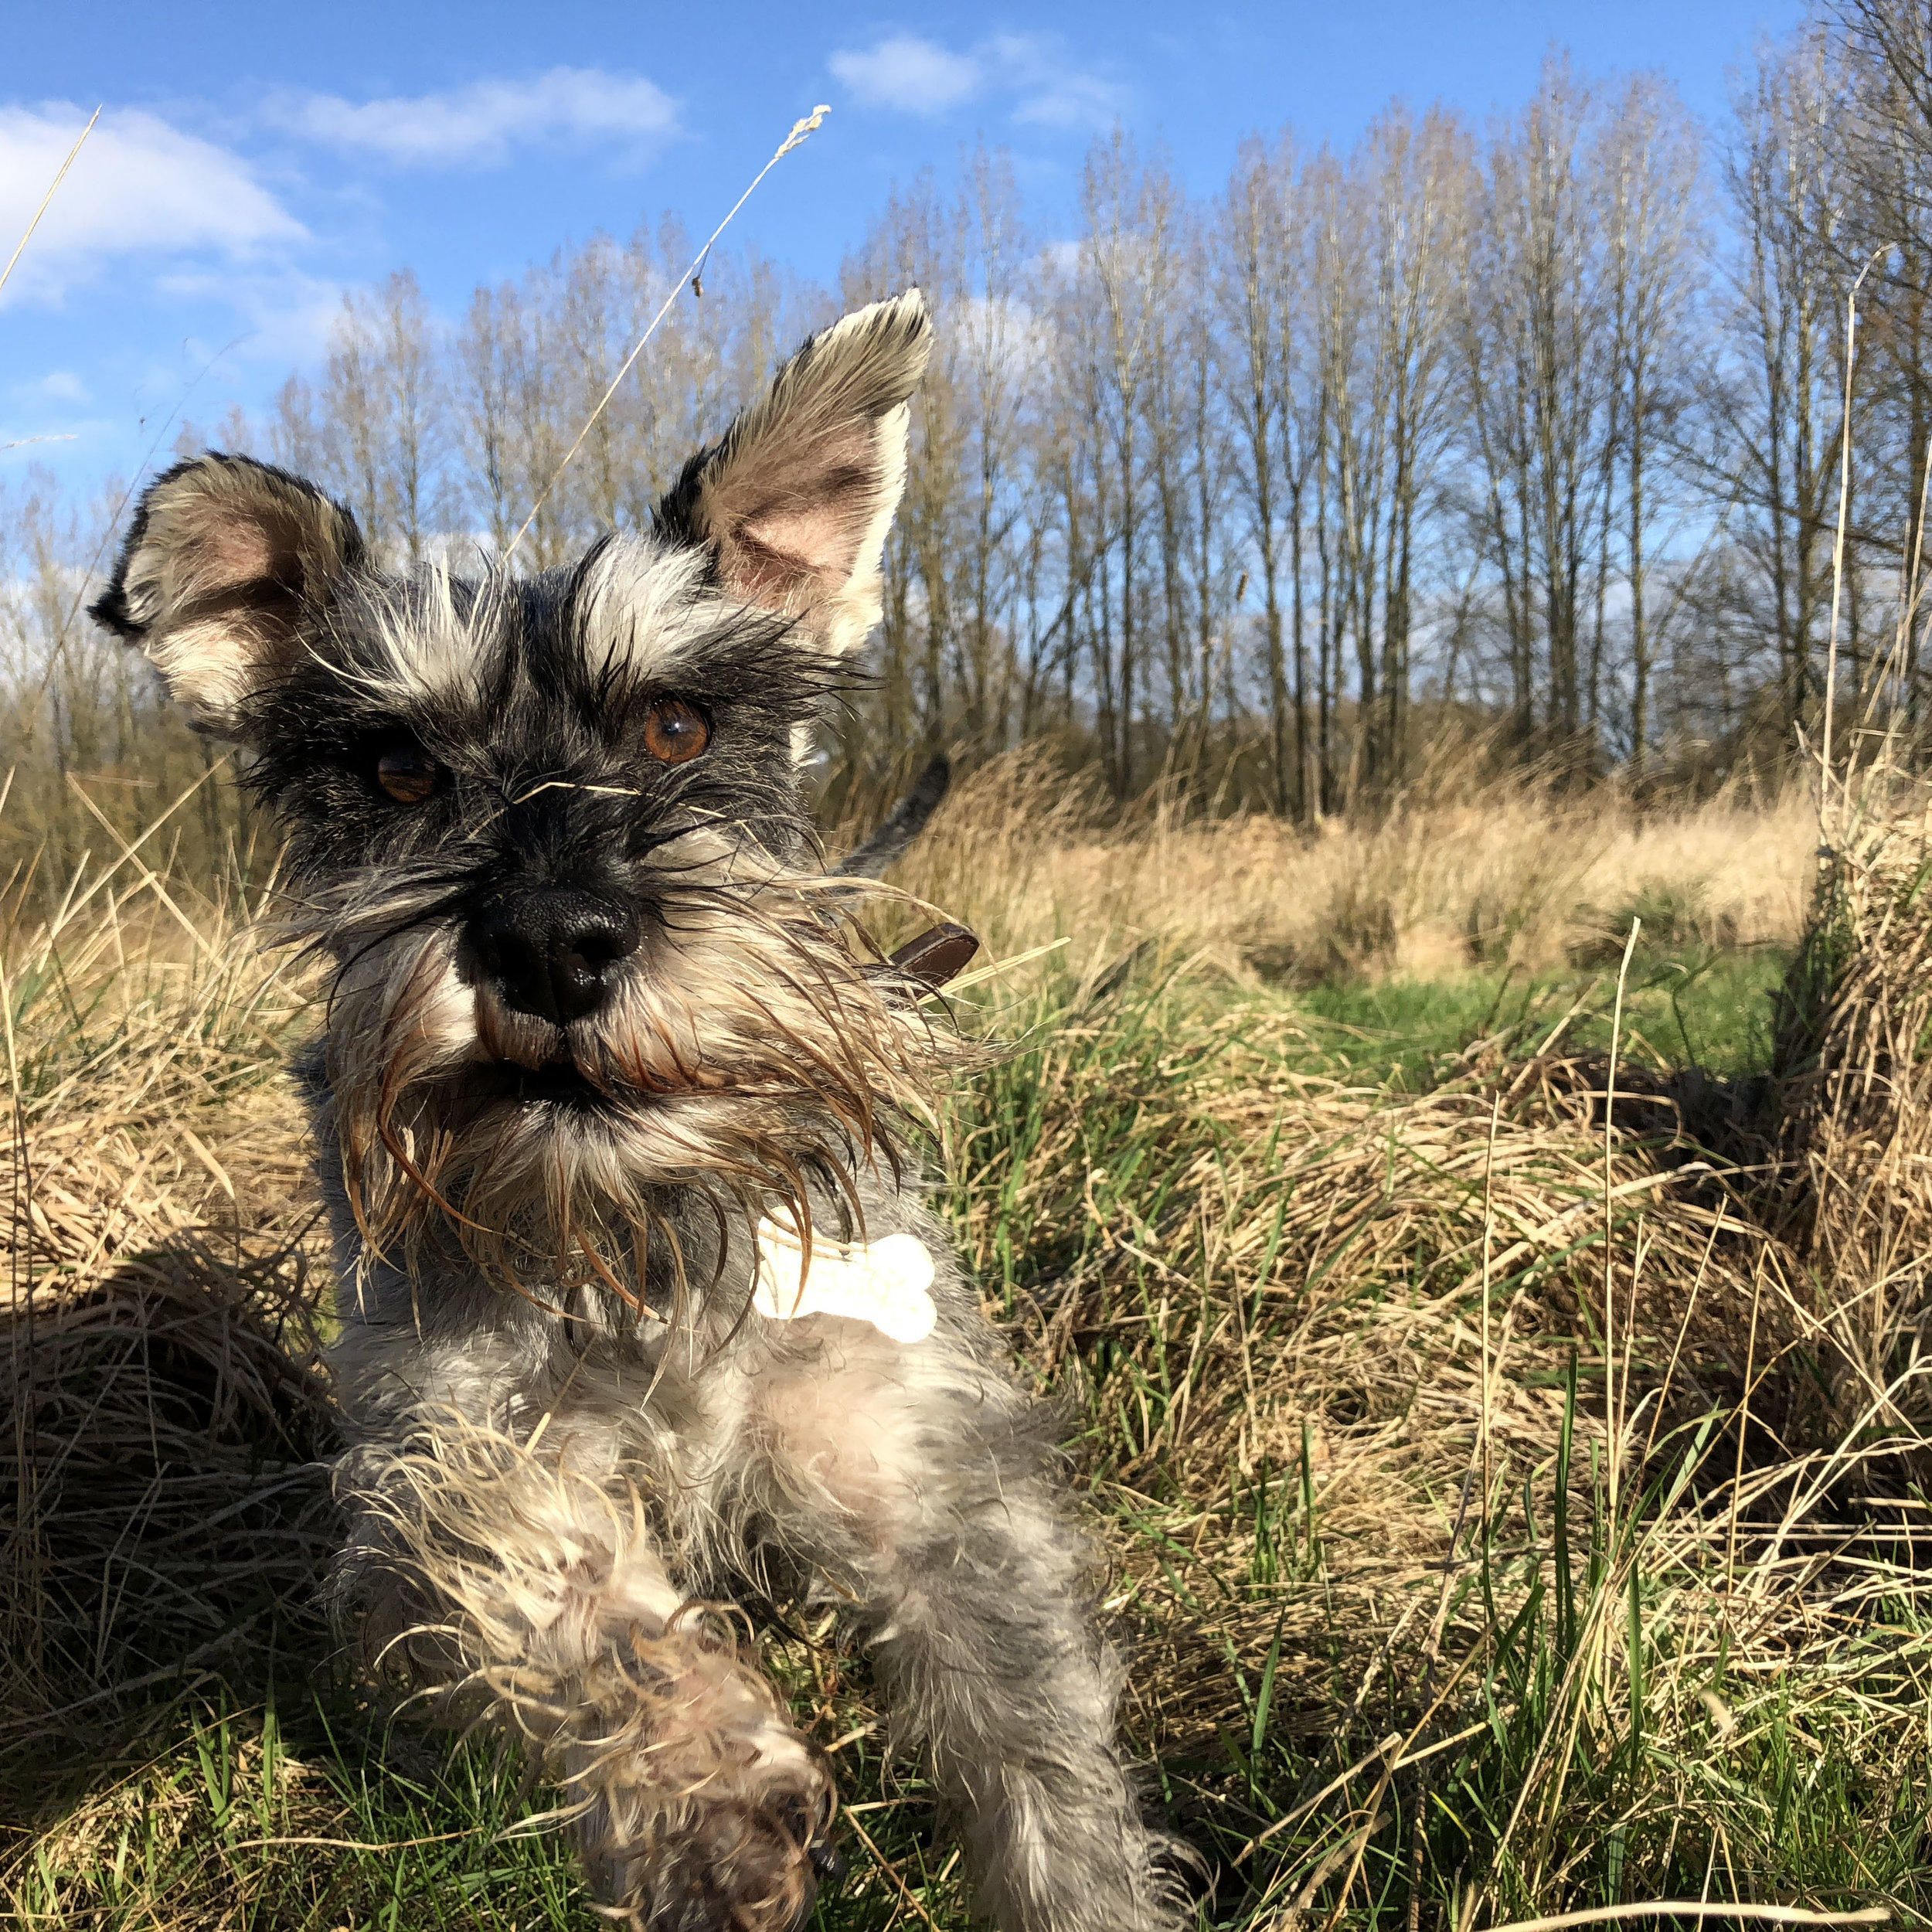 Our Miniature Schnauzer has been walked by We Walk Your Dogs since a puppy. He loves his walks with them, and it's real peace of mind to both myself and my husband knowing he is being so well looked after whilst we're at work.  We Walk Your Dogs are so reliable, flexible when it comes to last minute changes and they so obviously enjoy their jobs- you can tell by the happy faces of the dogs on the pics they post!  I would highly recommend Ness and her lovely team to anyone wanting the best care for their precious furbabies!   Lindsey, Darby Green